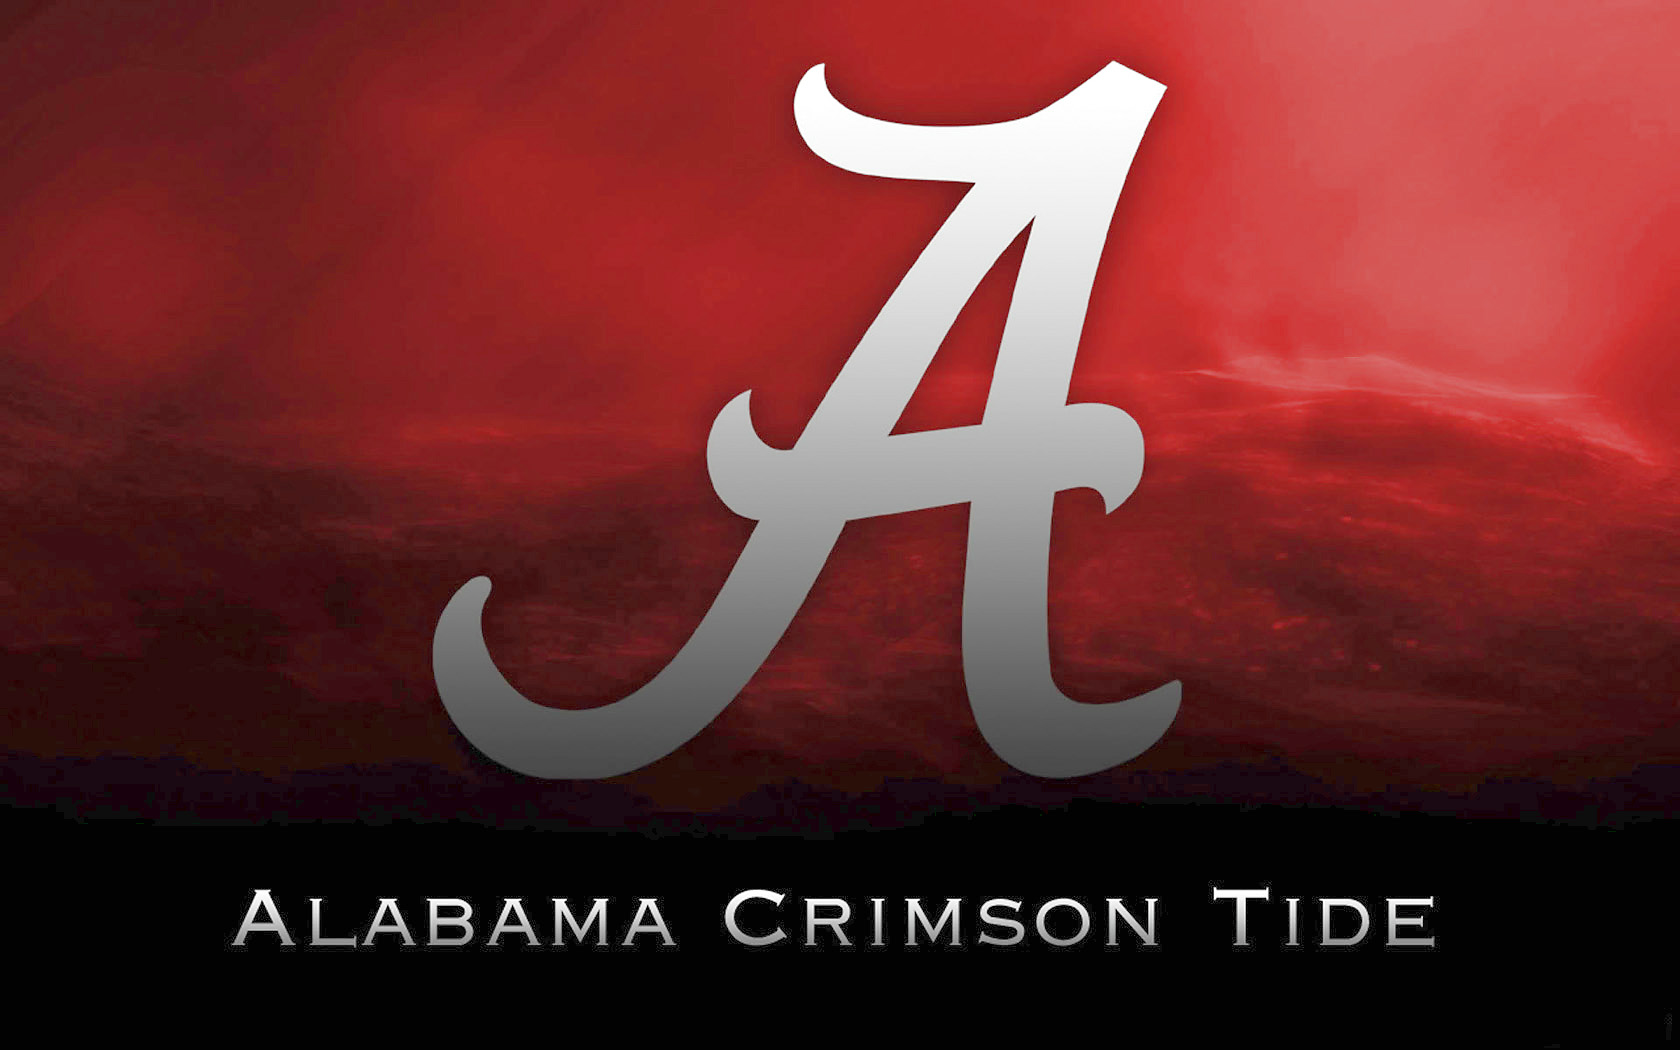 Crimsontidercom  Alabama Wallpaper 1680x1050